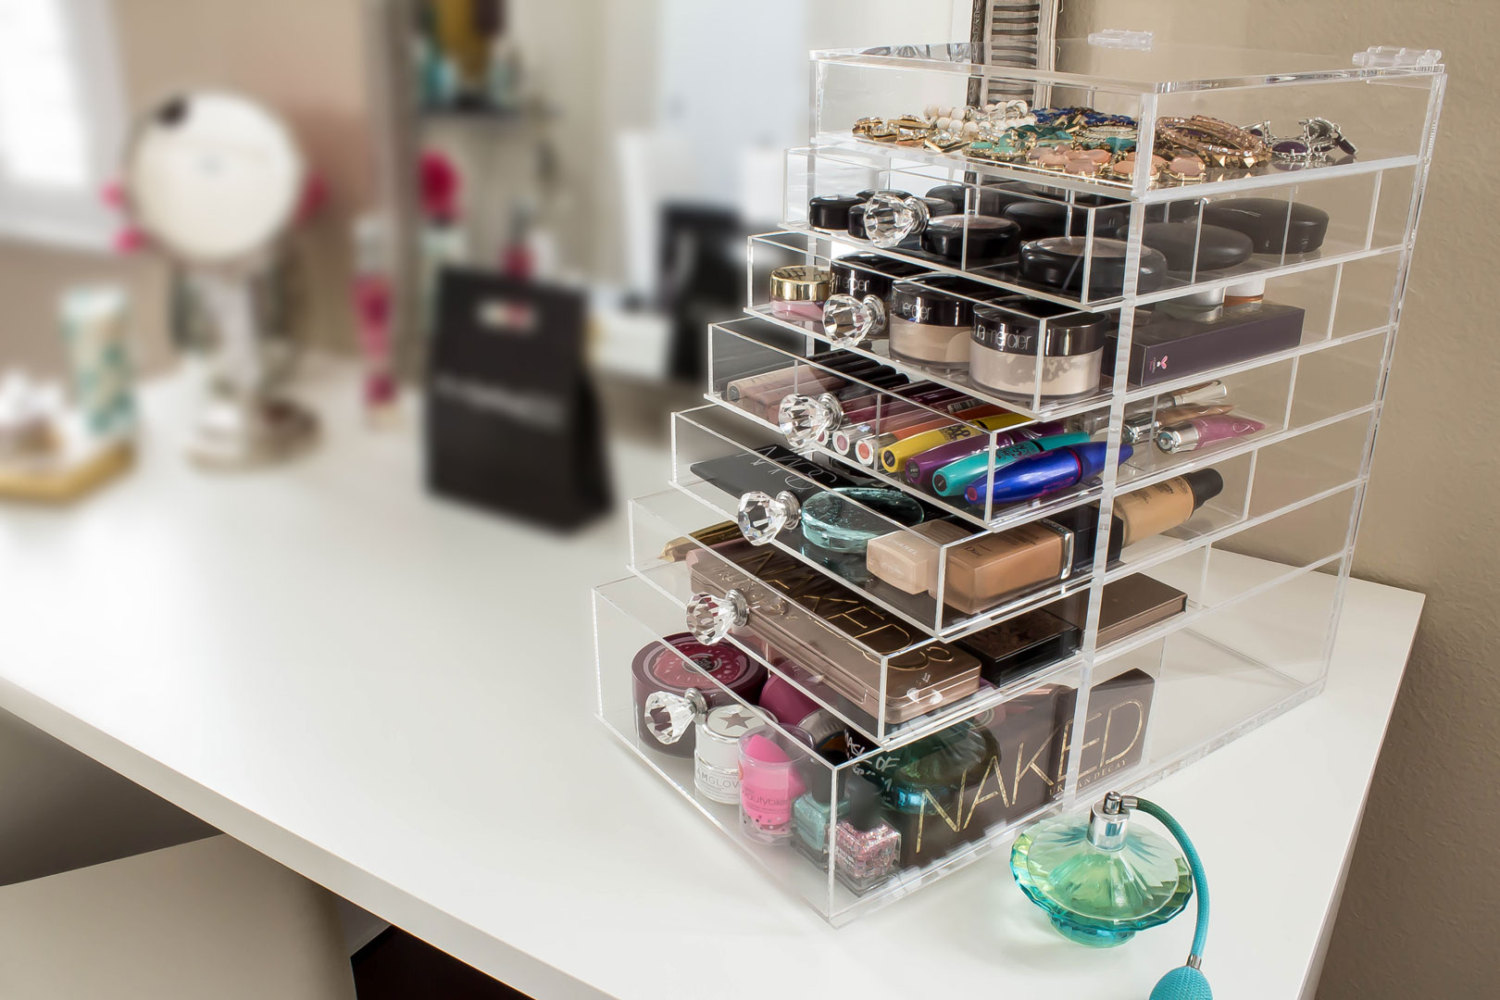 High Quality Use A Makeup Organizer To Make Your Vanity Look More Put Together. (Photo: